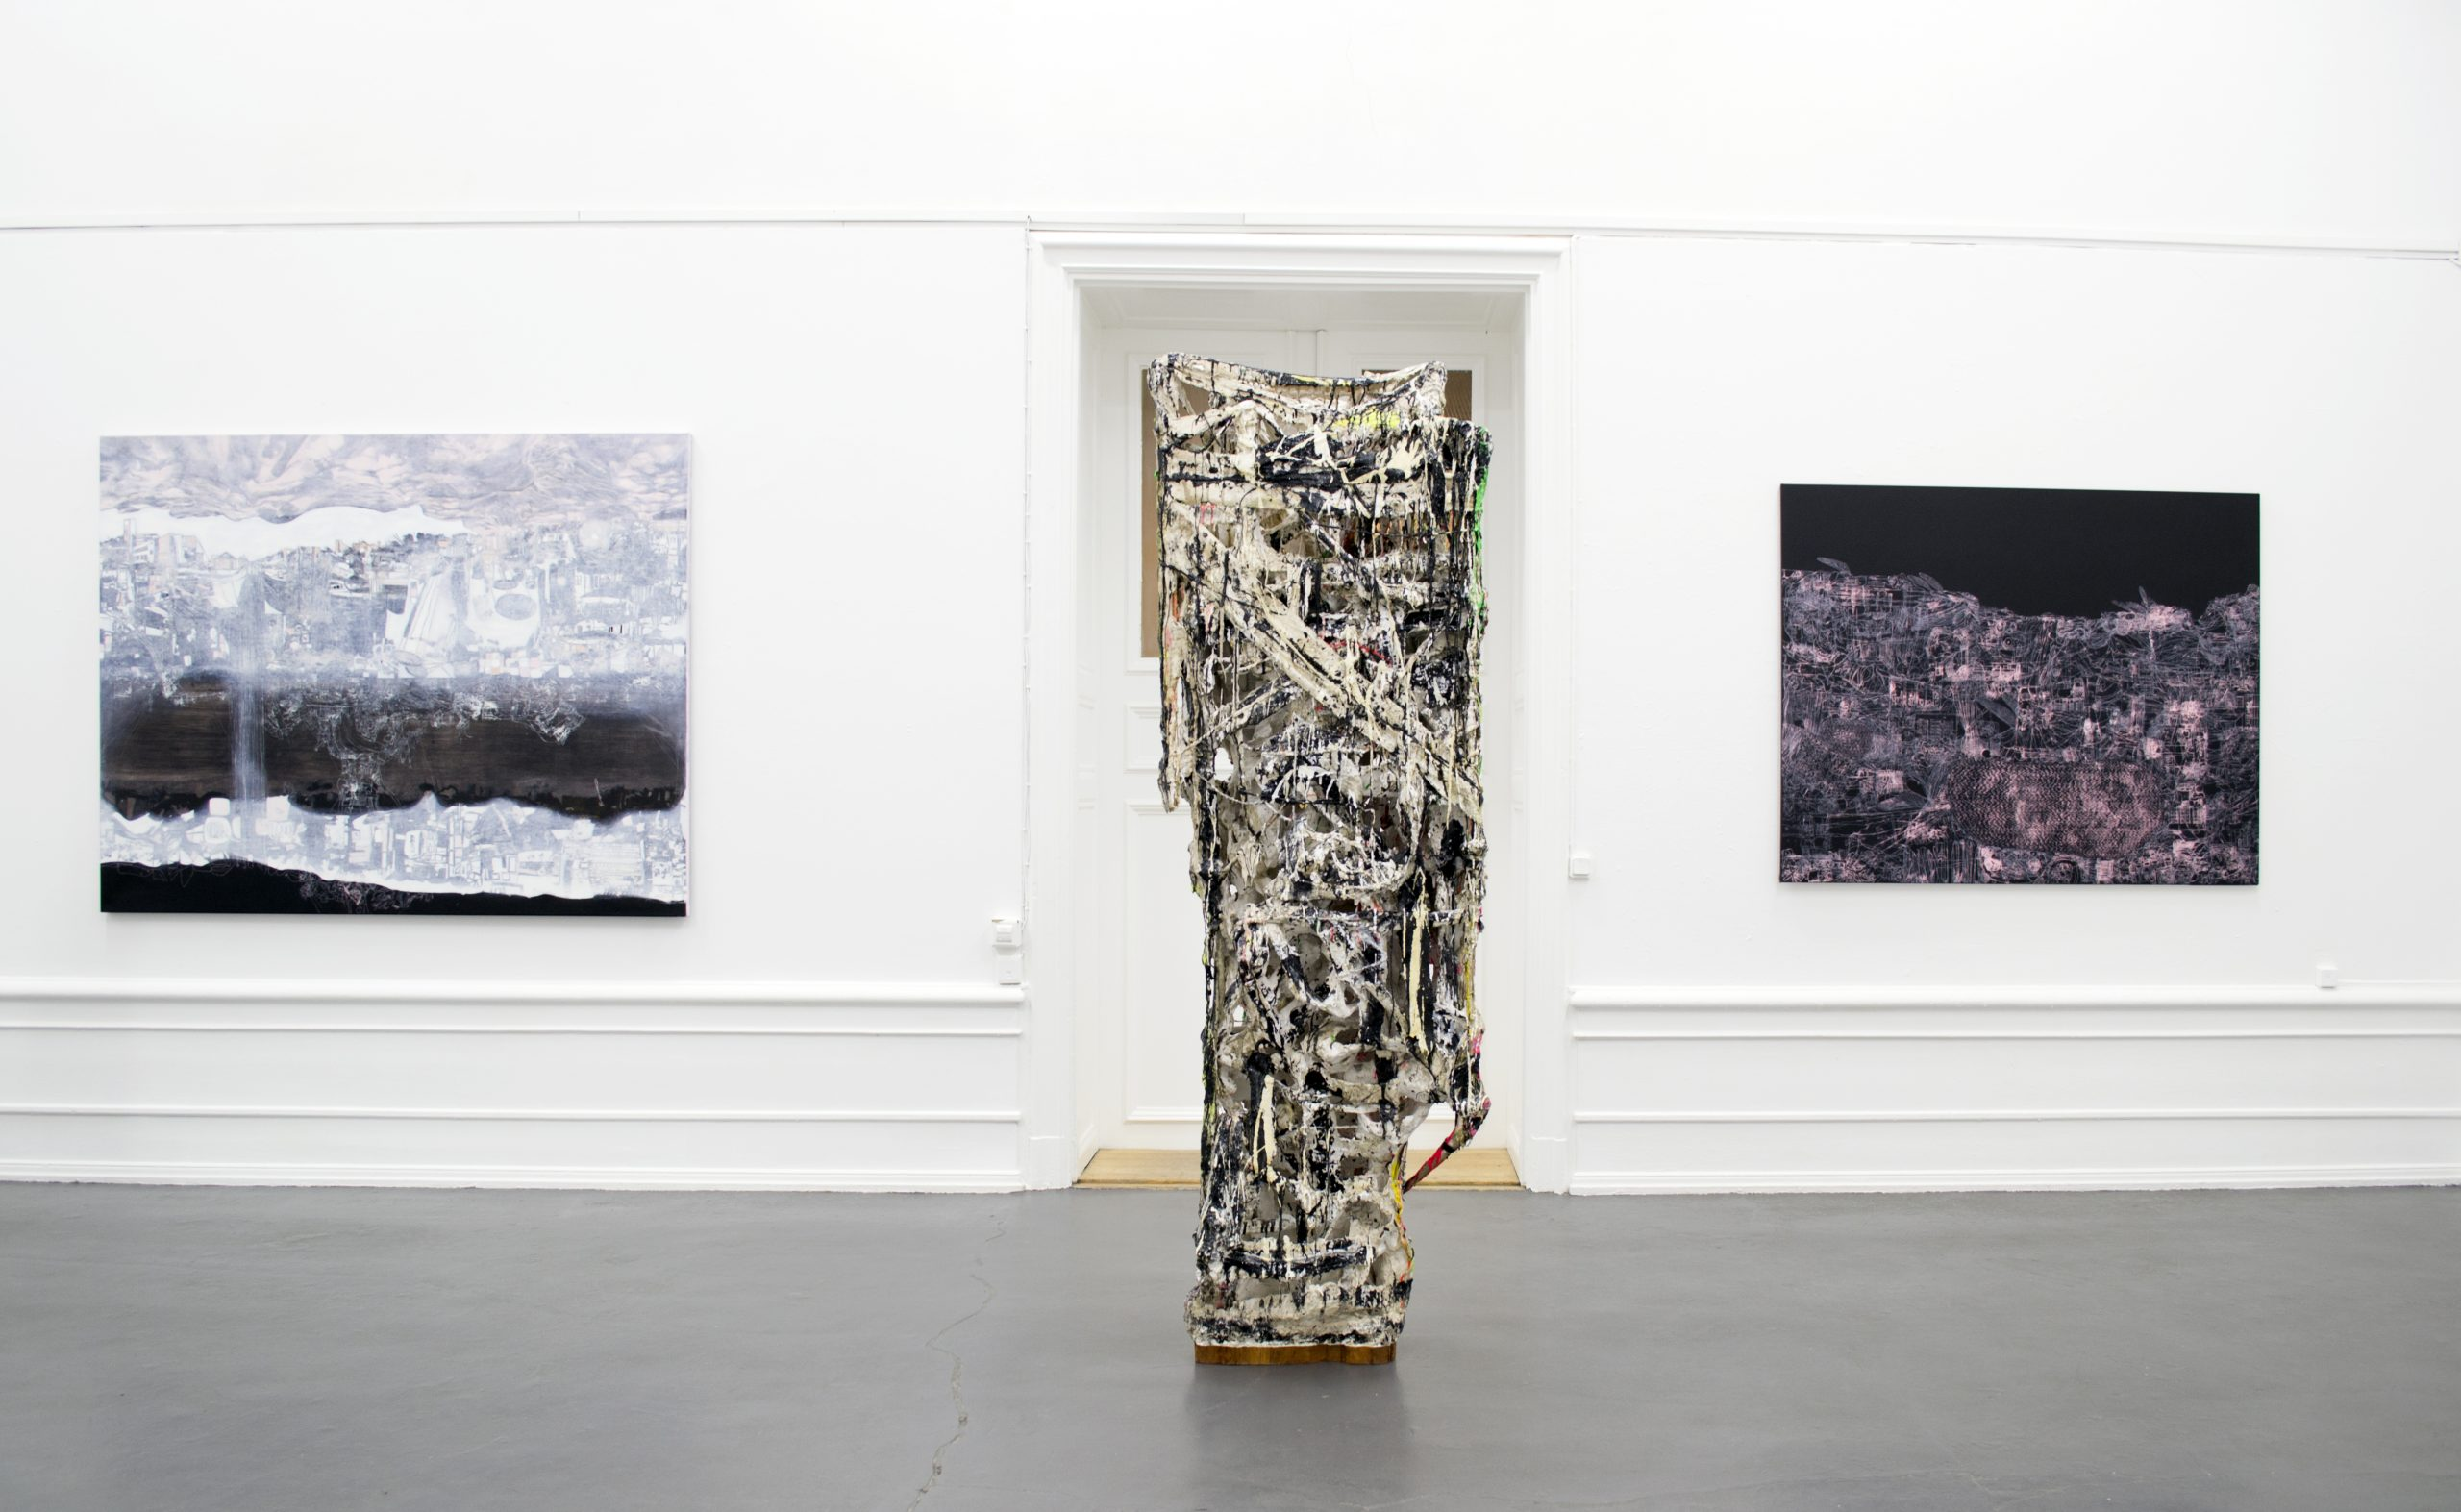 Jakob Westberg, (sculpture), Lisa D Manner (paintings). Installation view: Sculpture and Painting in Dialogue, 2020